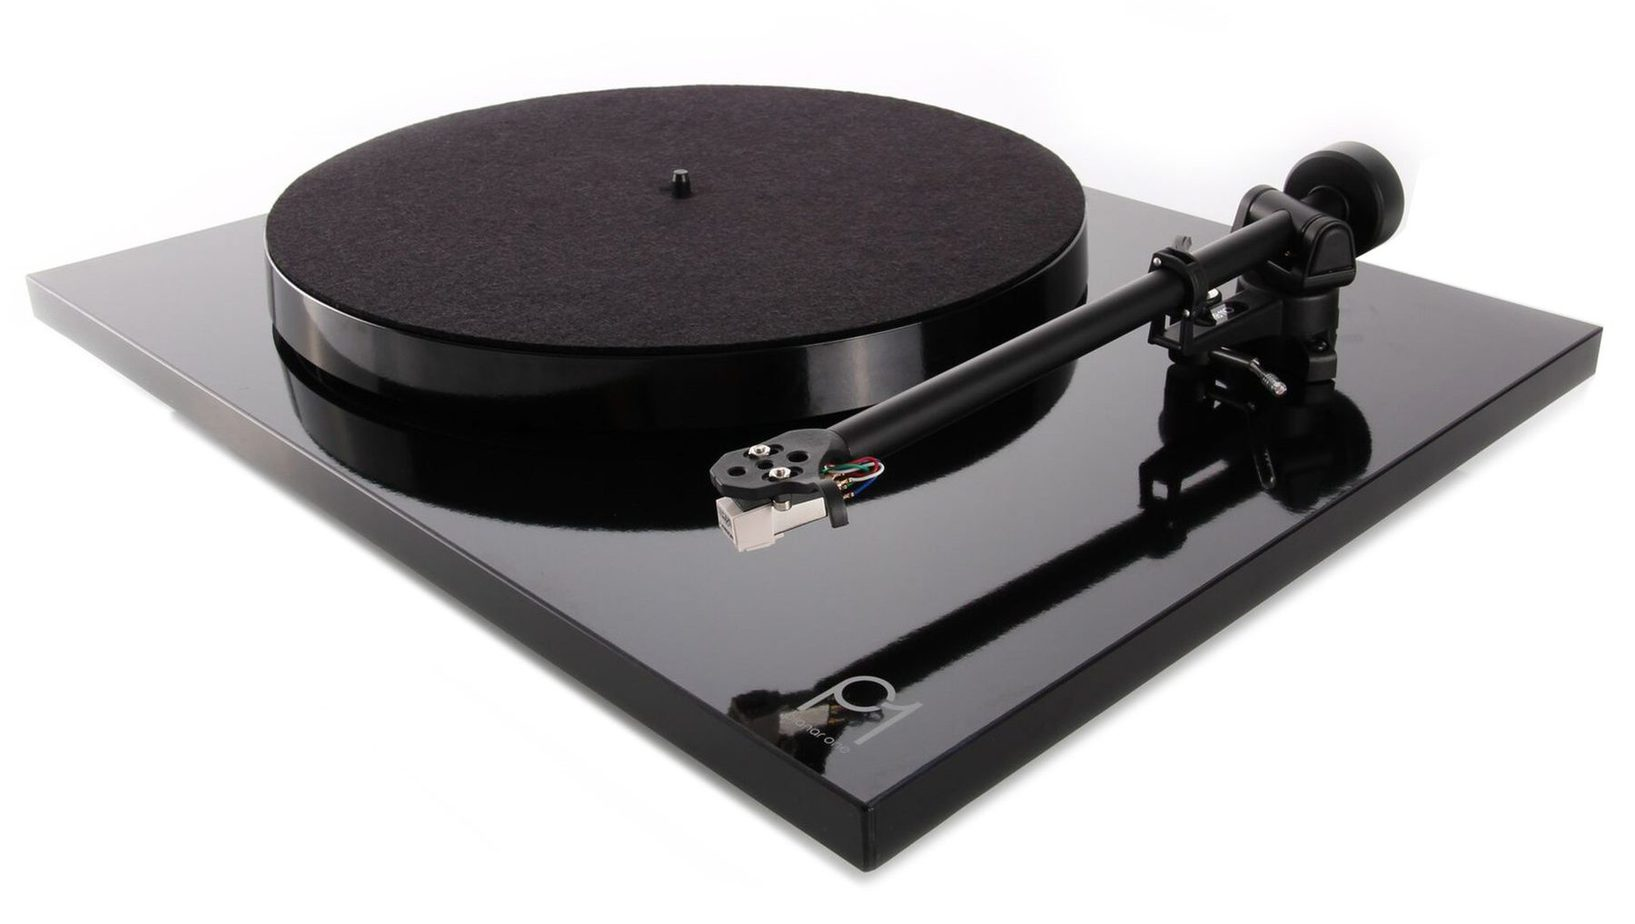 A plug and play turntable